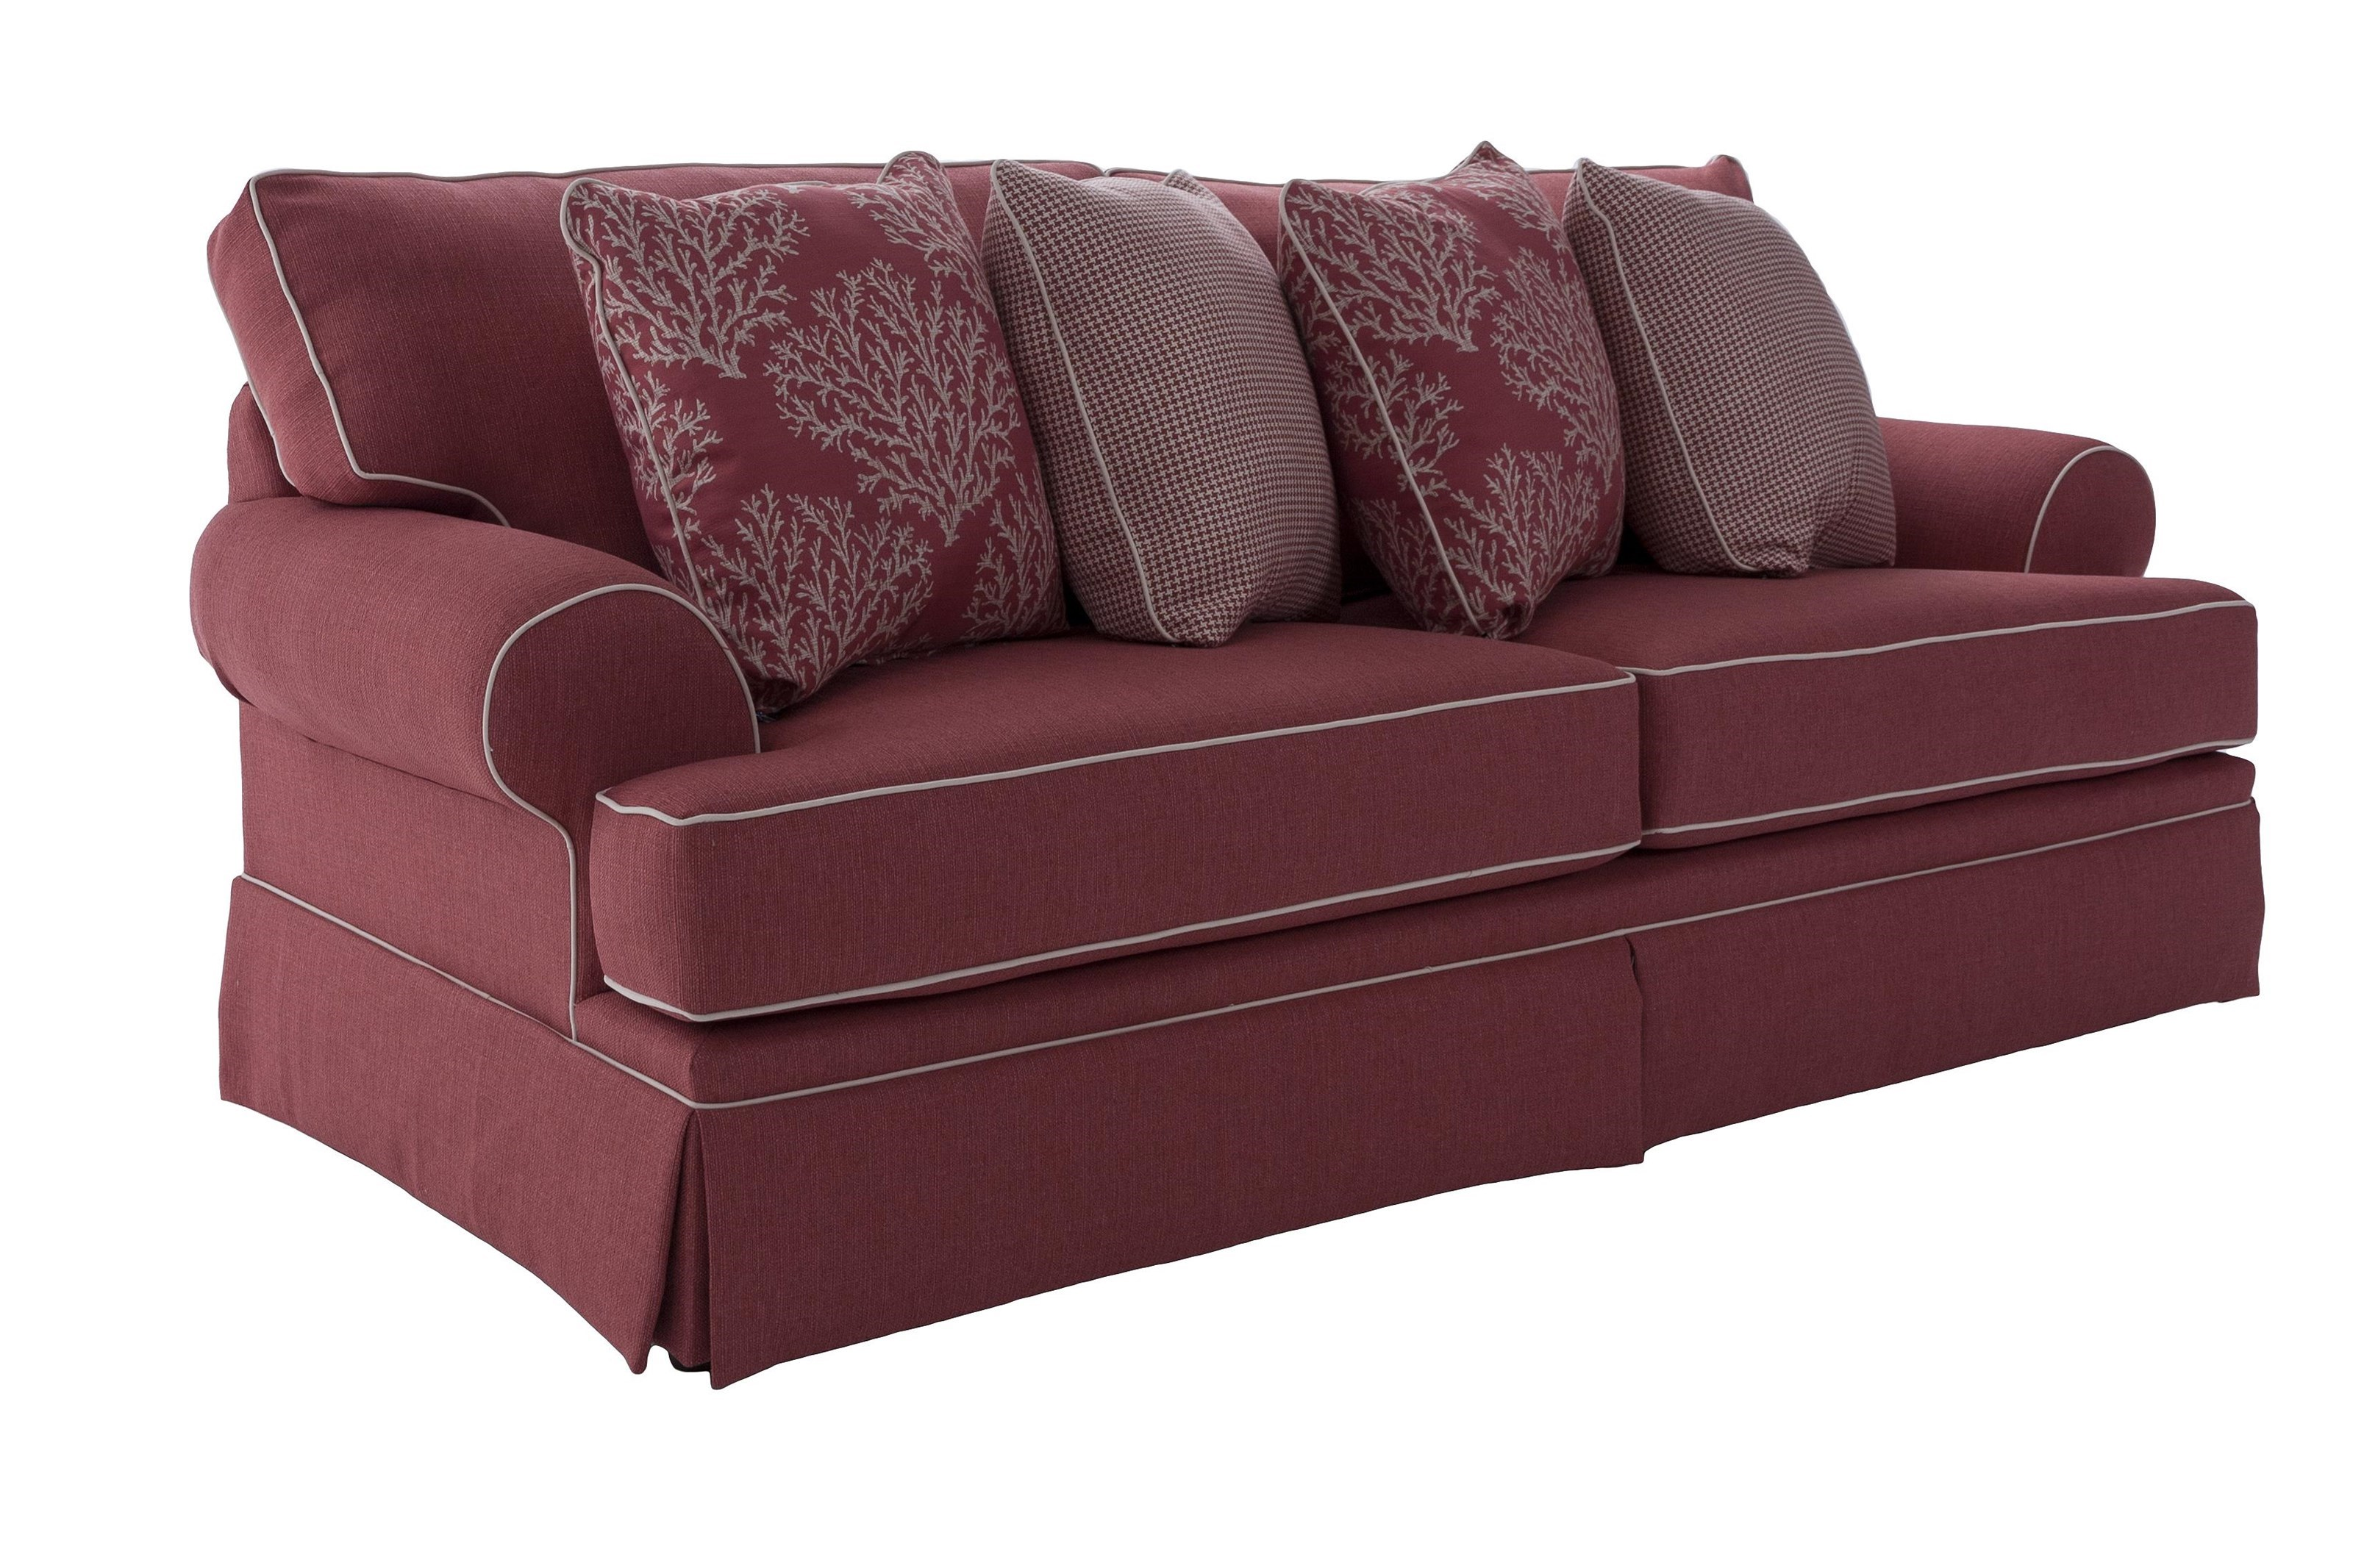 Coral Furniture. Broyhill Furniture Emilycasual Style Sofa Coral